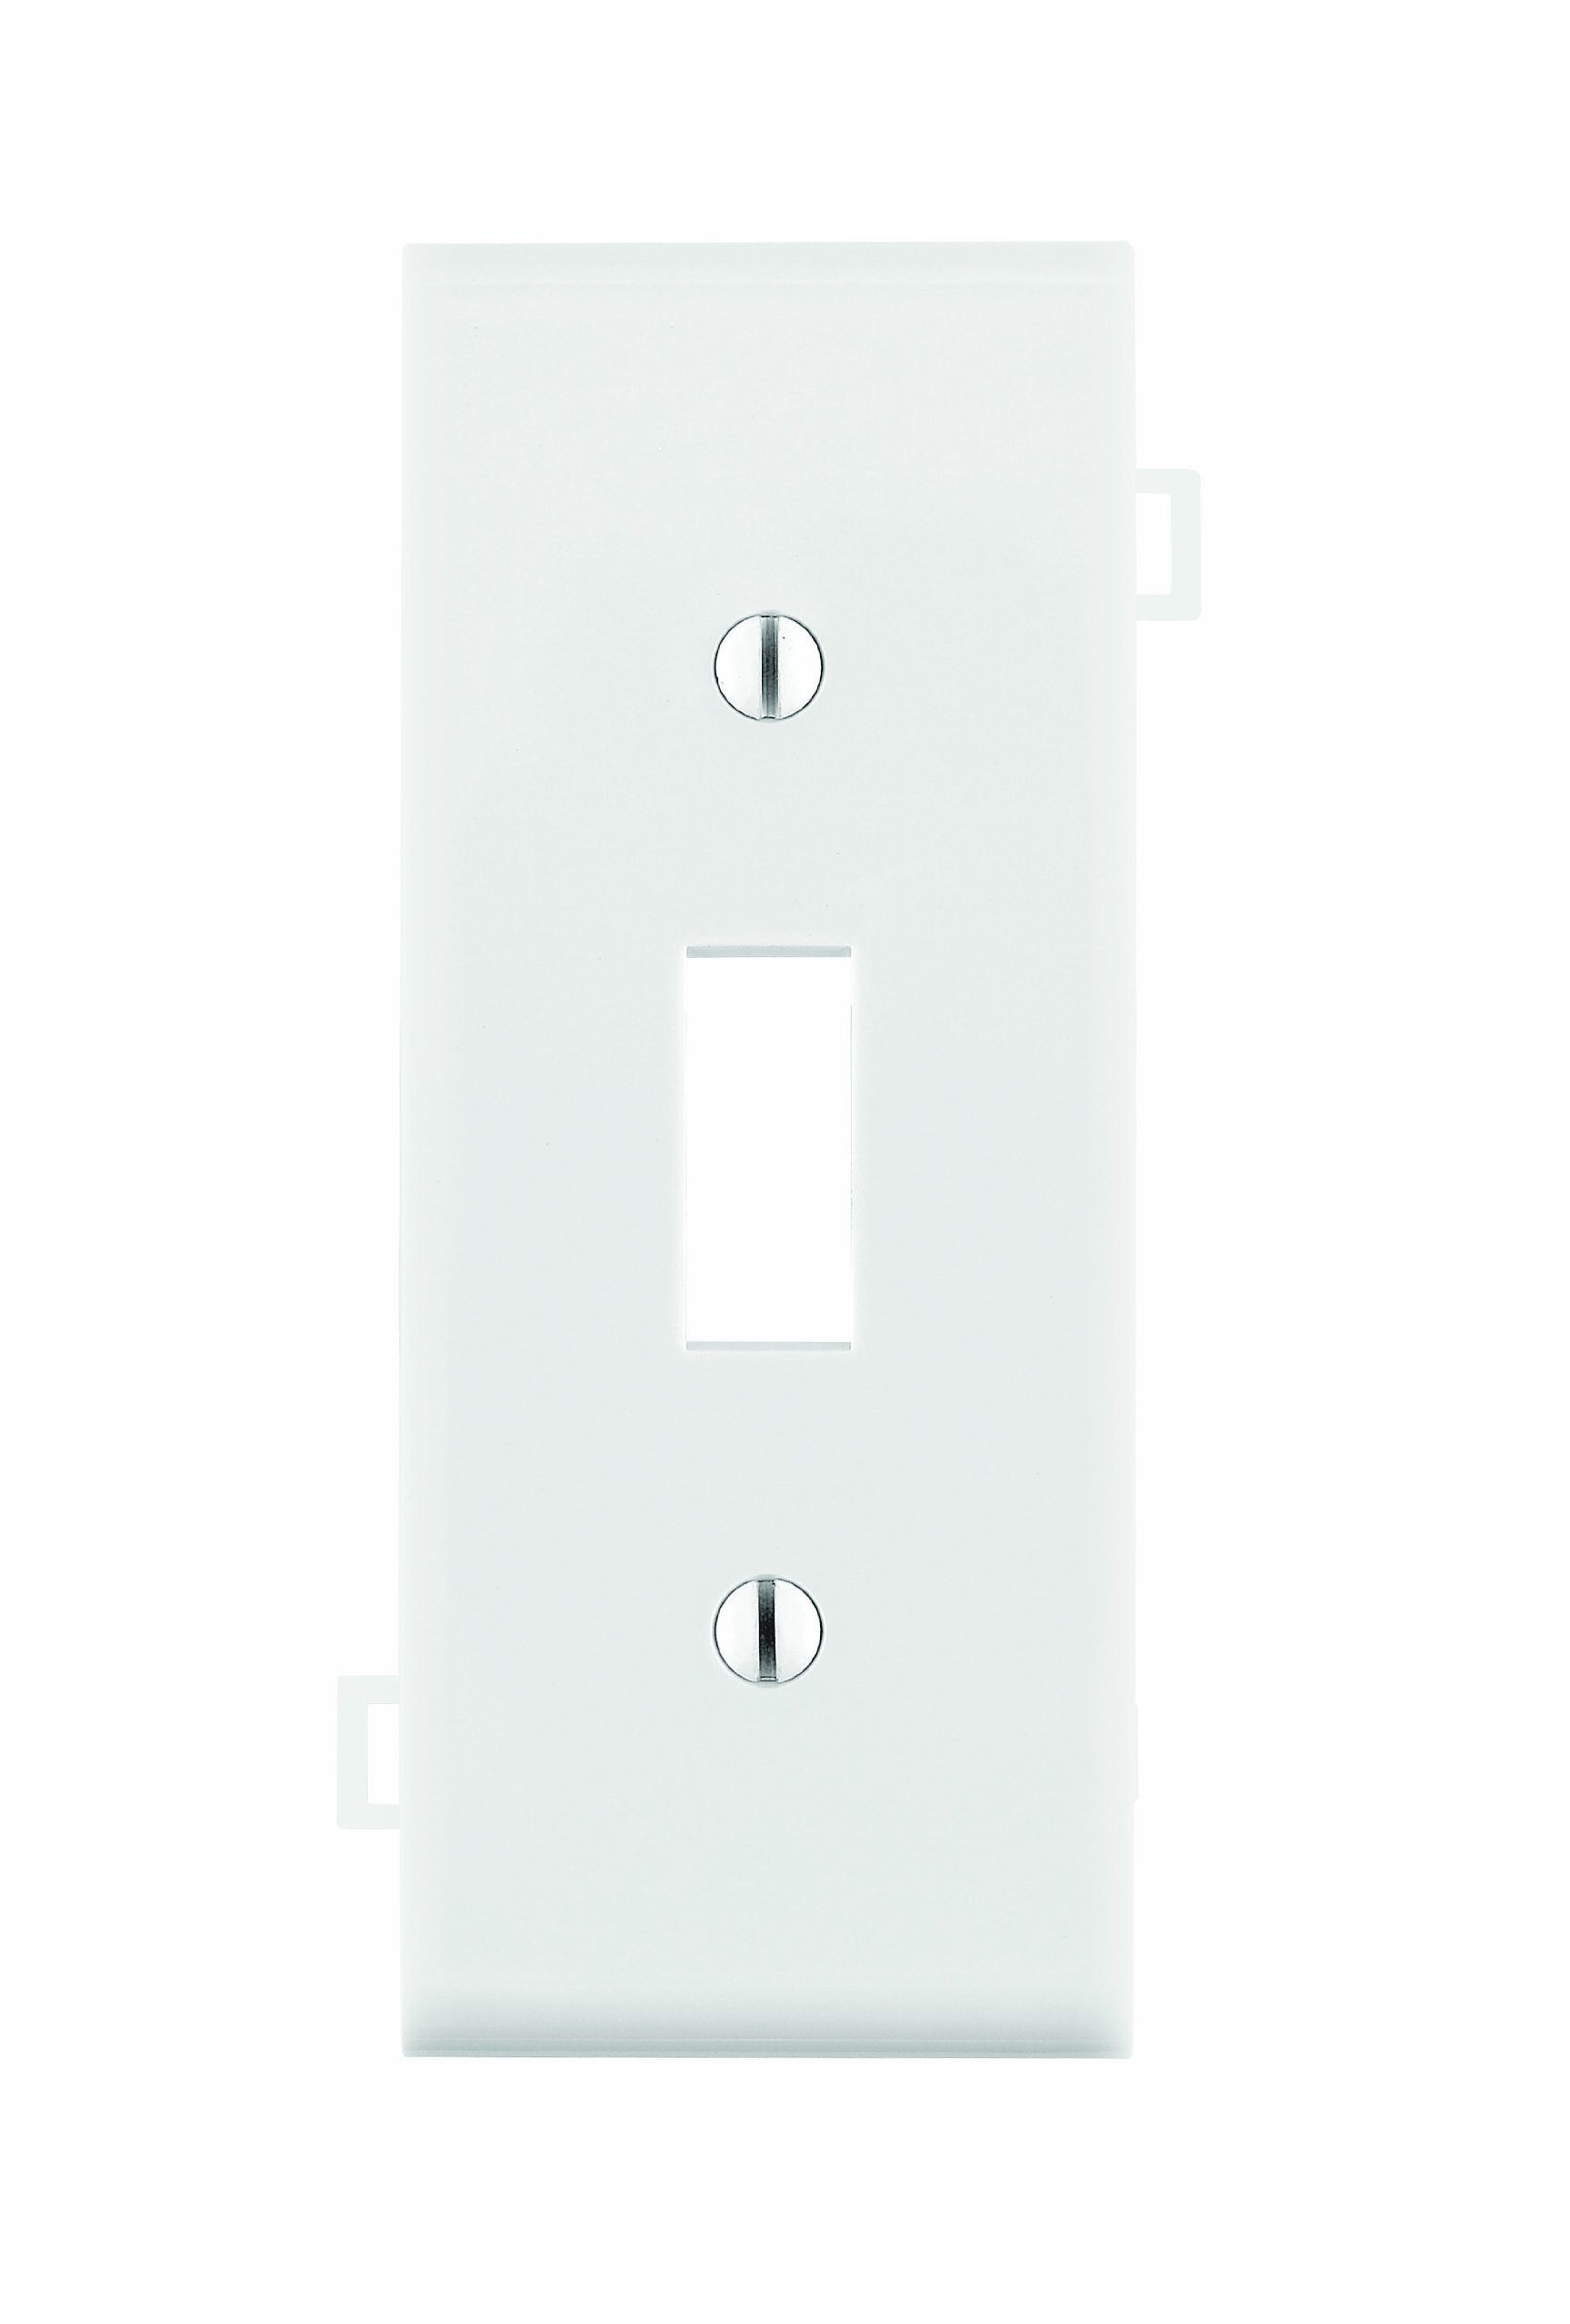 Leviton PSC1-W 1-Gang Toggle Device Switch Wallplate, Sectional, Thermoplastic Nylon, Device Mount, Center Panel, White